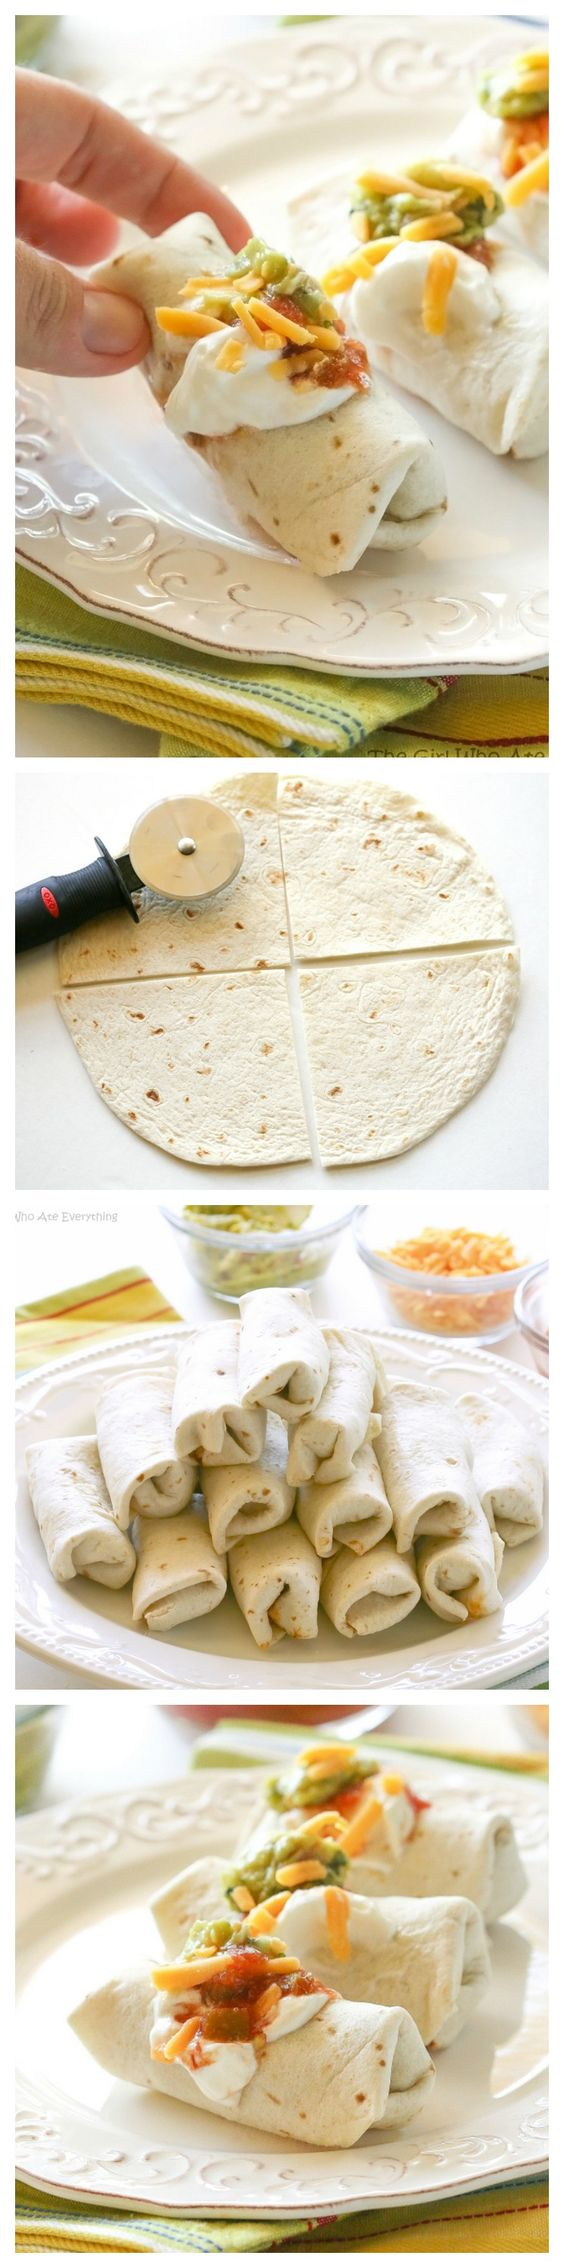 Serve some mini burritos already made or let your guests top their own.